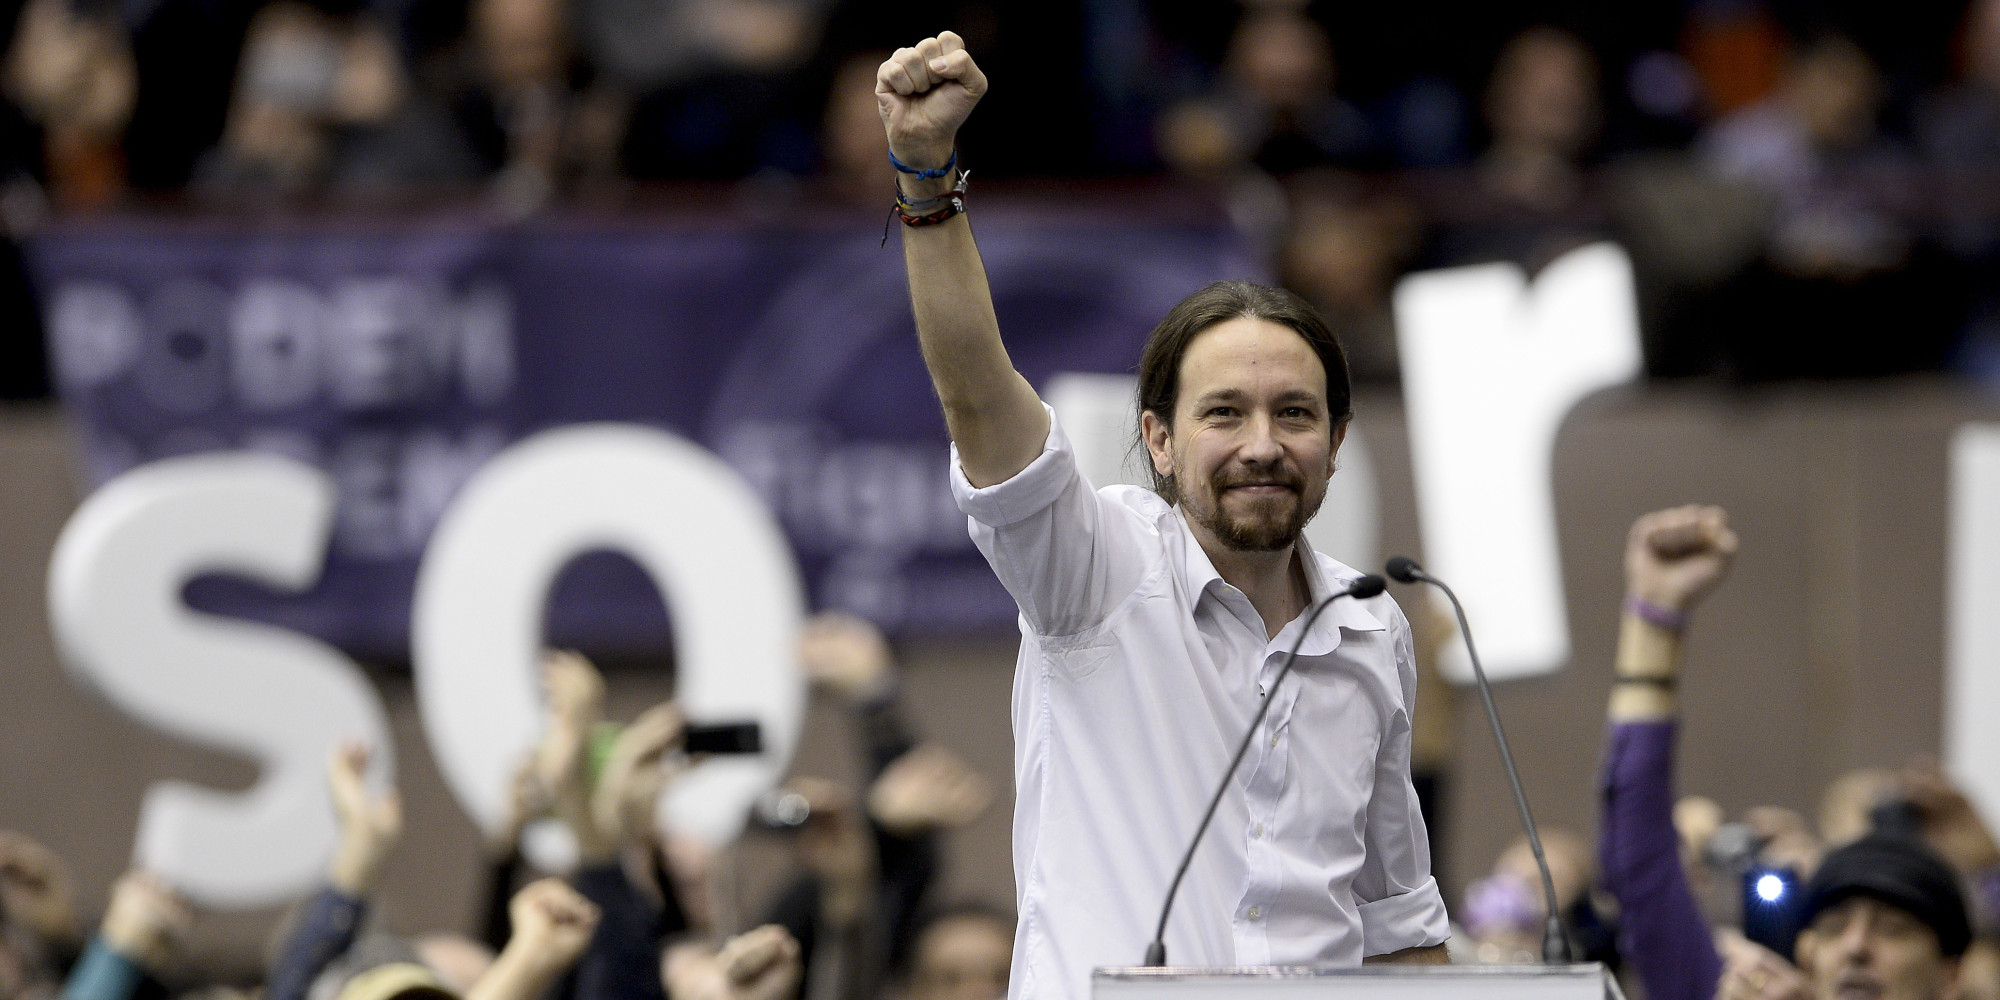 """Leader of Podemos, a left-wing party that emerged out of the """"Indignants"""" movement, Pablo Iglesias, holds up his fist at a party meeting on December 21, 2014 in Barcelona. Spain's conservative ruling party and the opposition Socialists are in panic mode as a surge in support for upstart Podemos shows little signs of abating ahead of elections next year. Less than a year since it was founded by the leaders of the Indignants movement, Podemos, with its pledge to defend the poor and bring to heel the elite """"caste"""" of politicians and bankers, is leading opinion polls. AFP PHOTO/ JOSEP LAGO"""